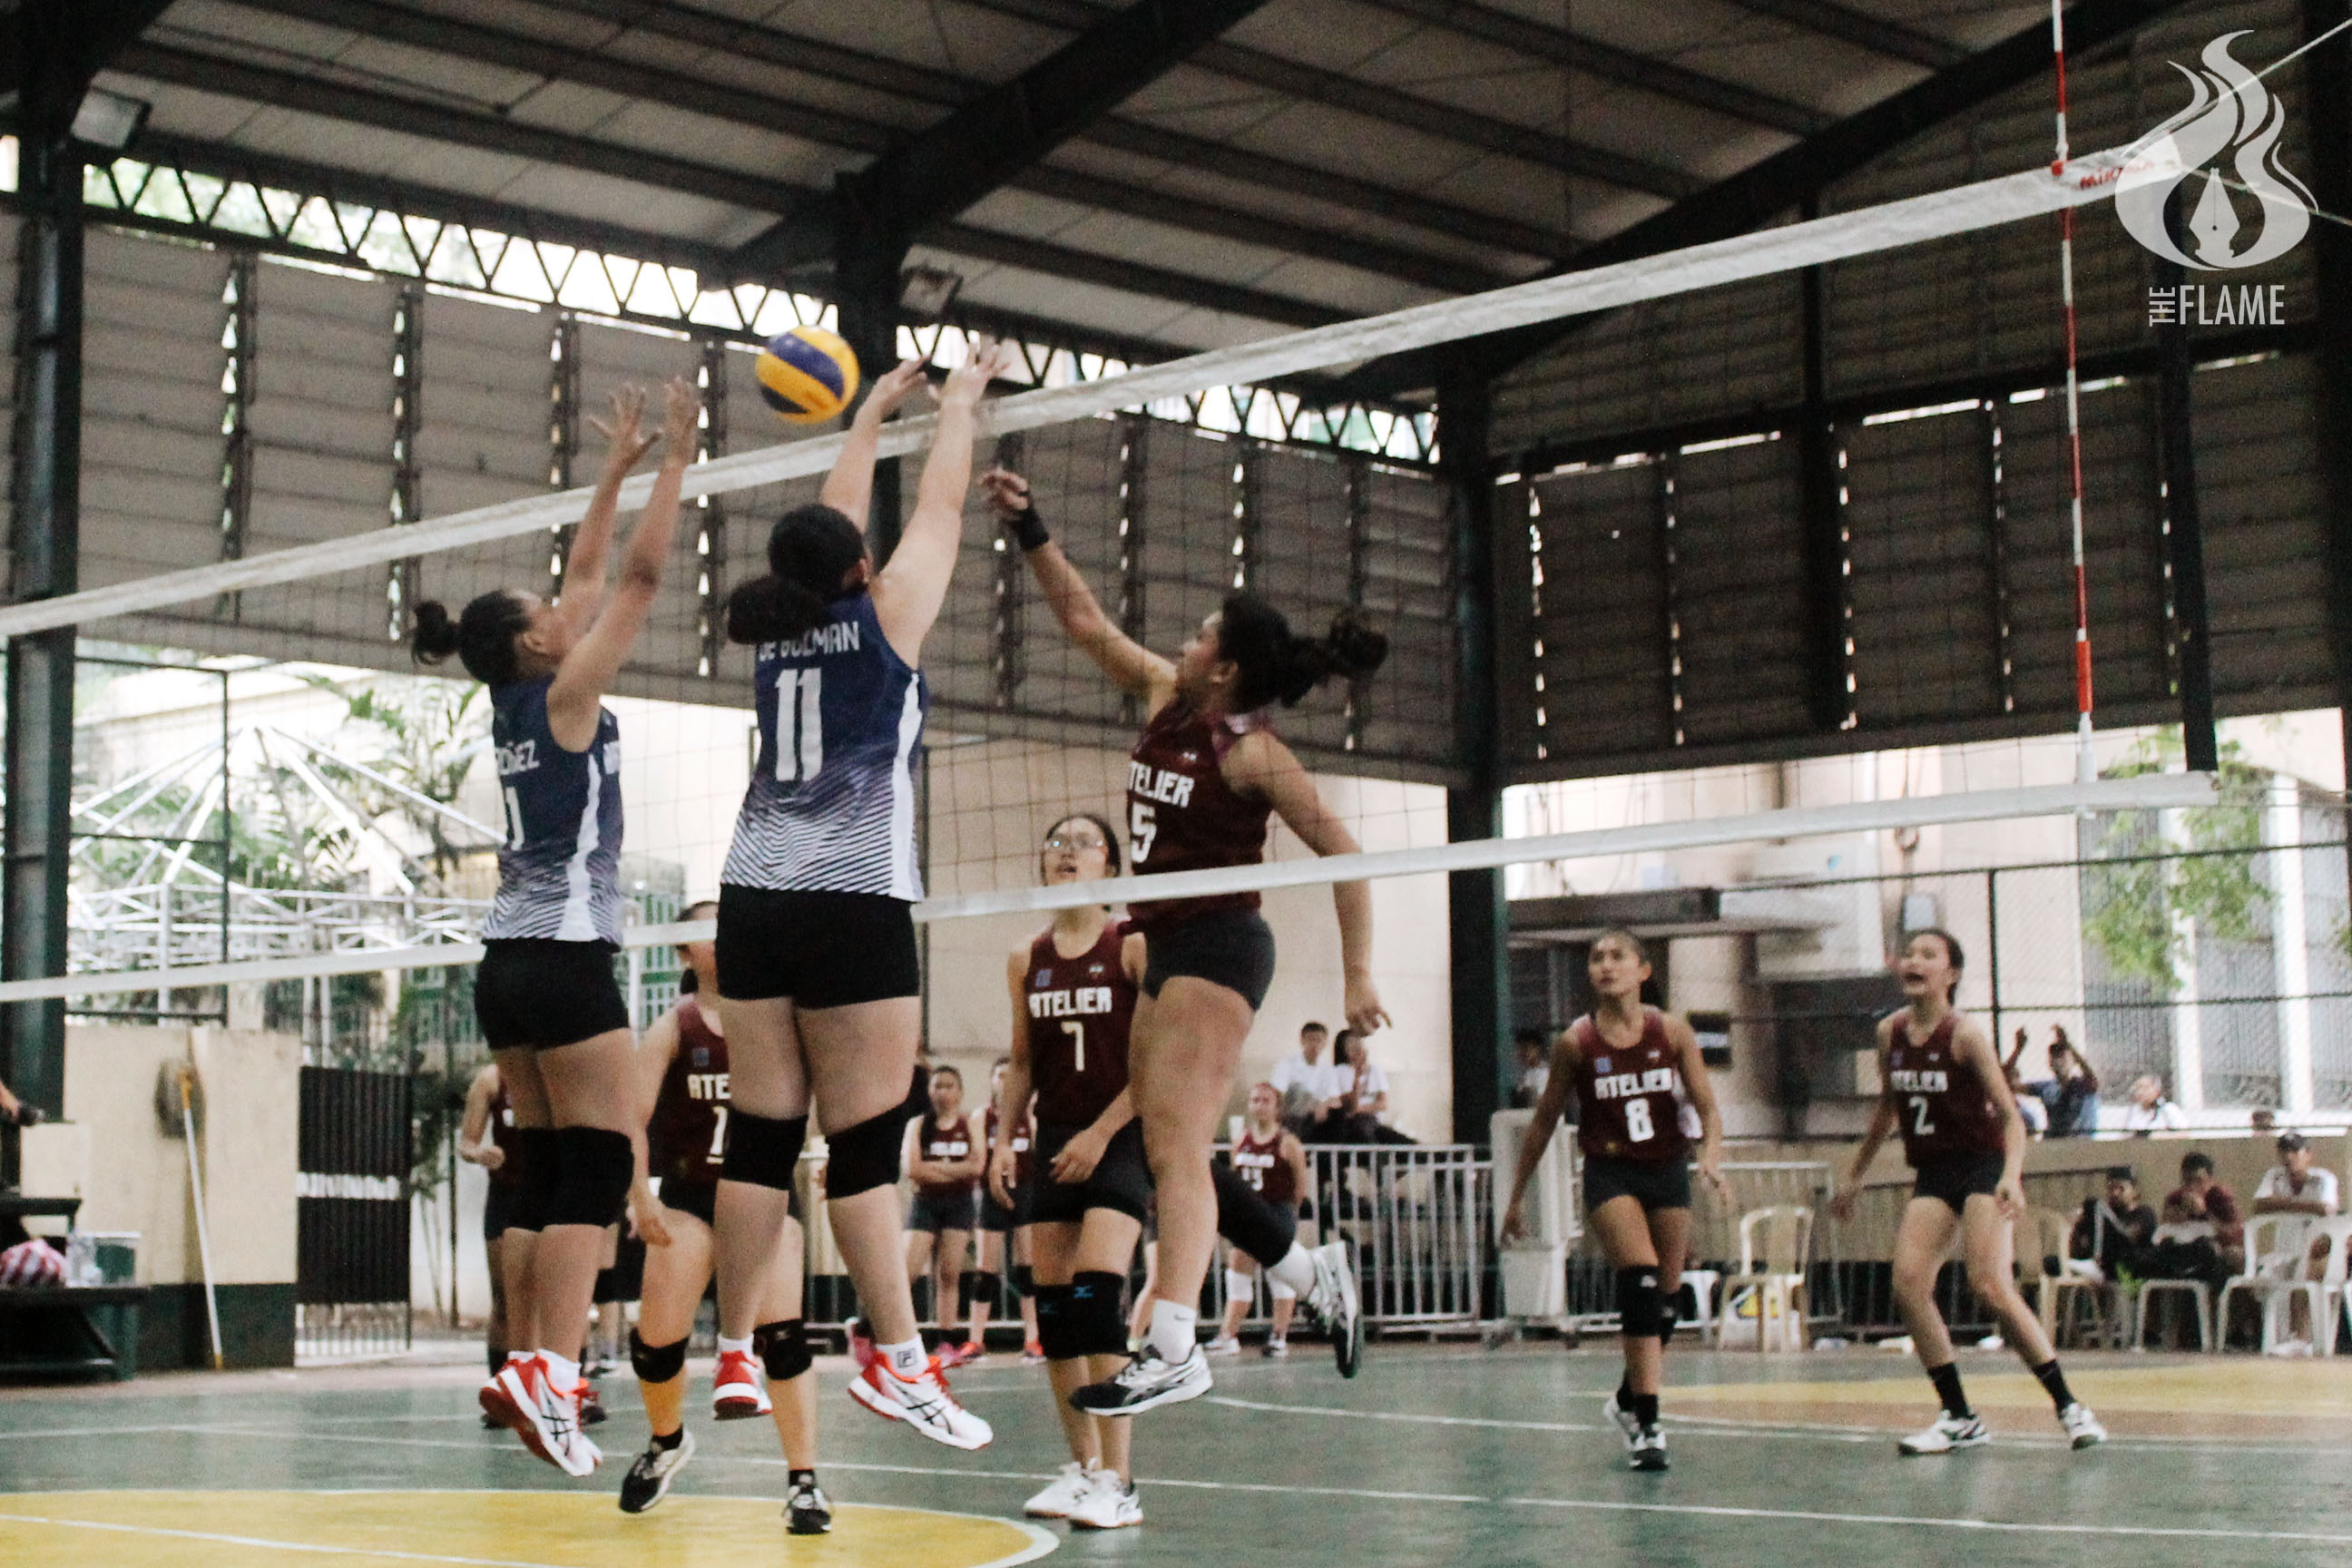 AB Women's Volleyball sweeps Arki for quarters spot